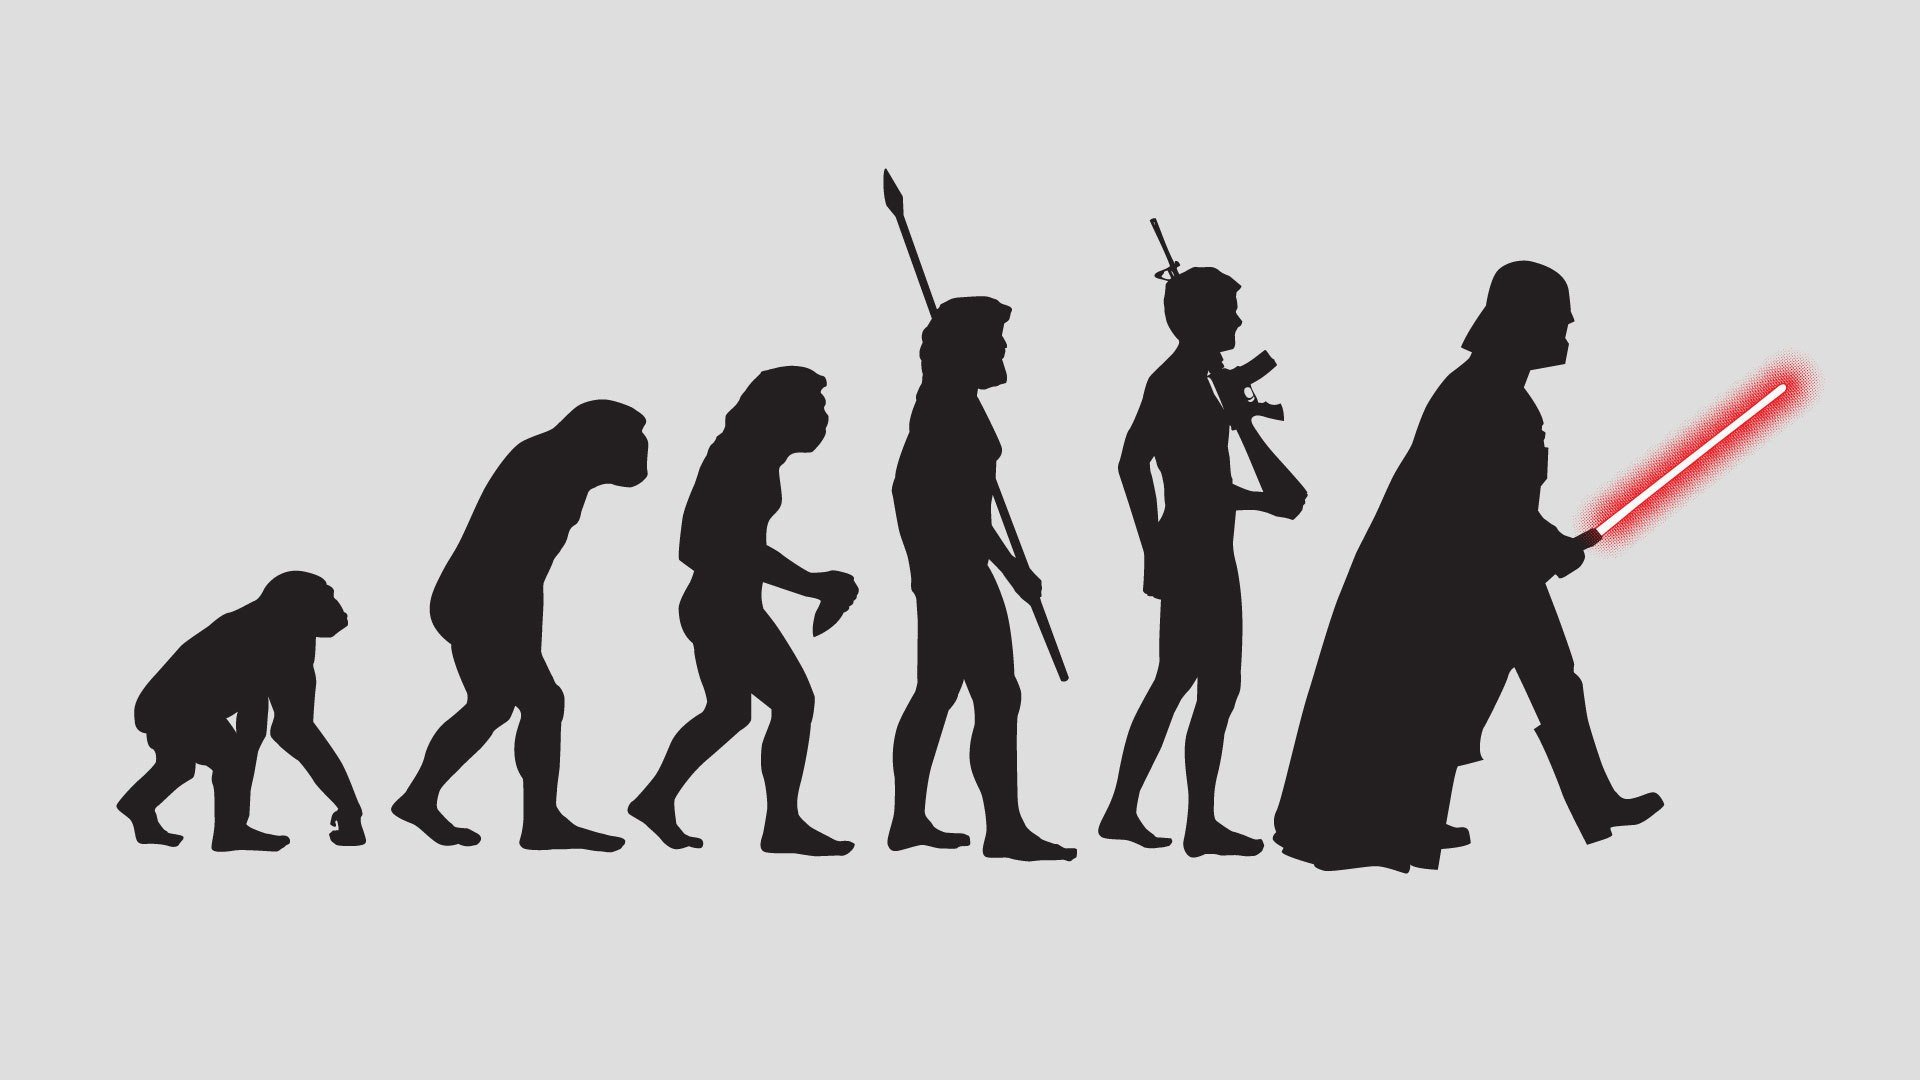 Star wars wallpaper evolution of man by mcnealy-d5i8t02 wallpaper ...